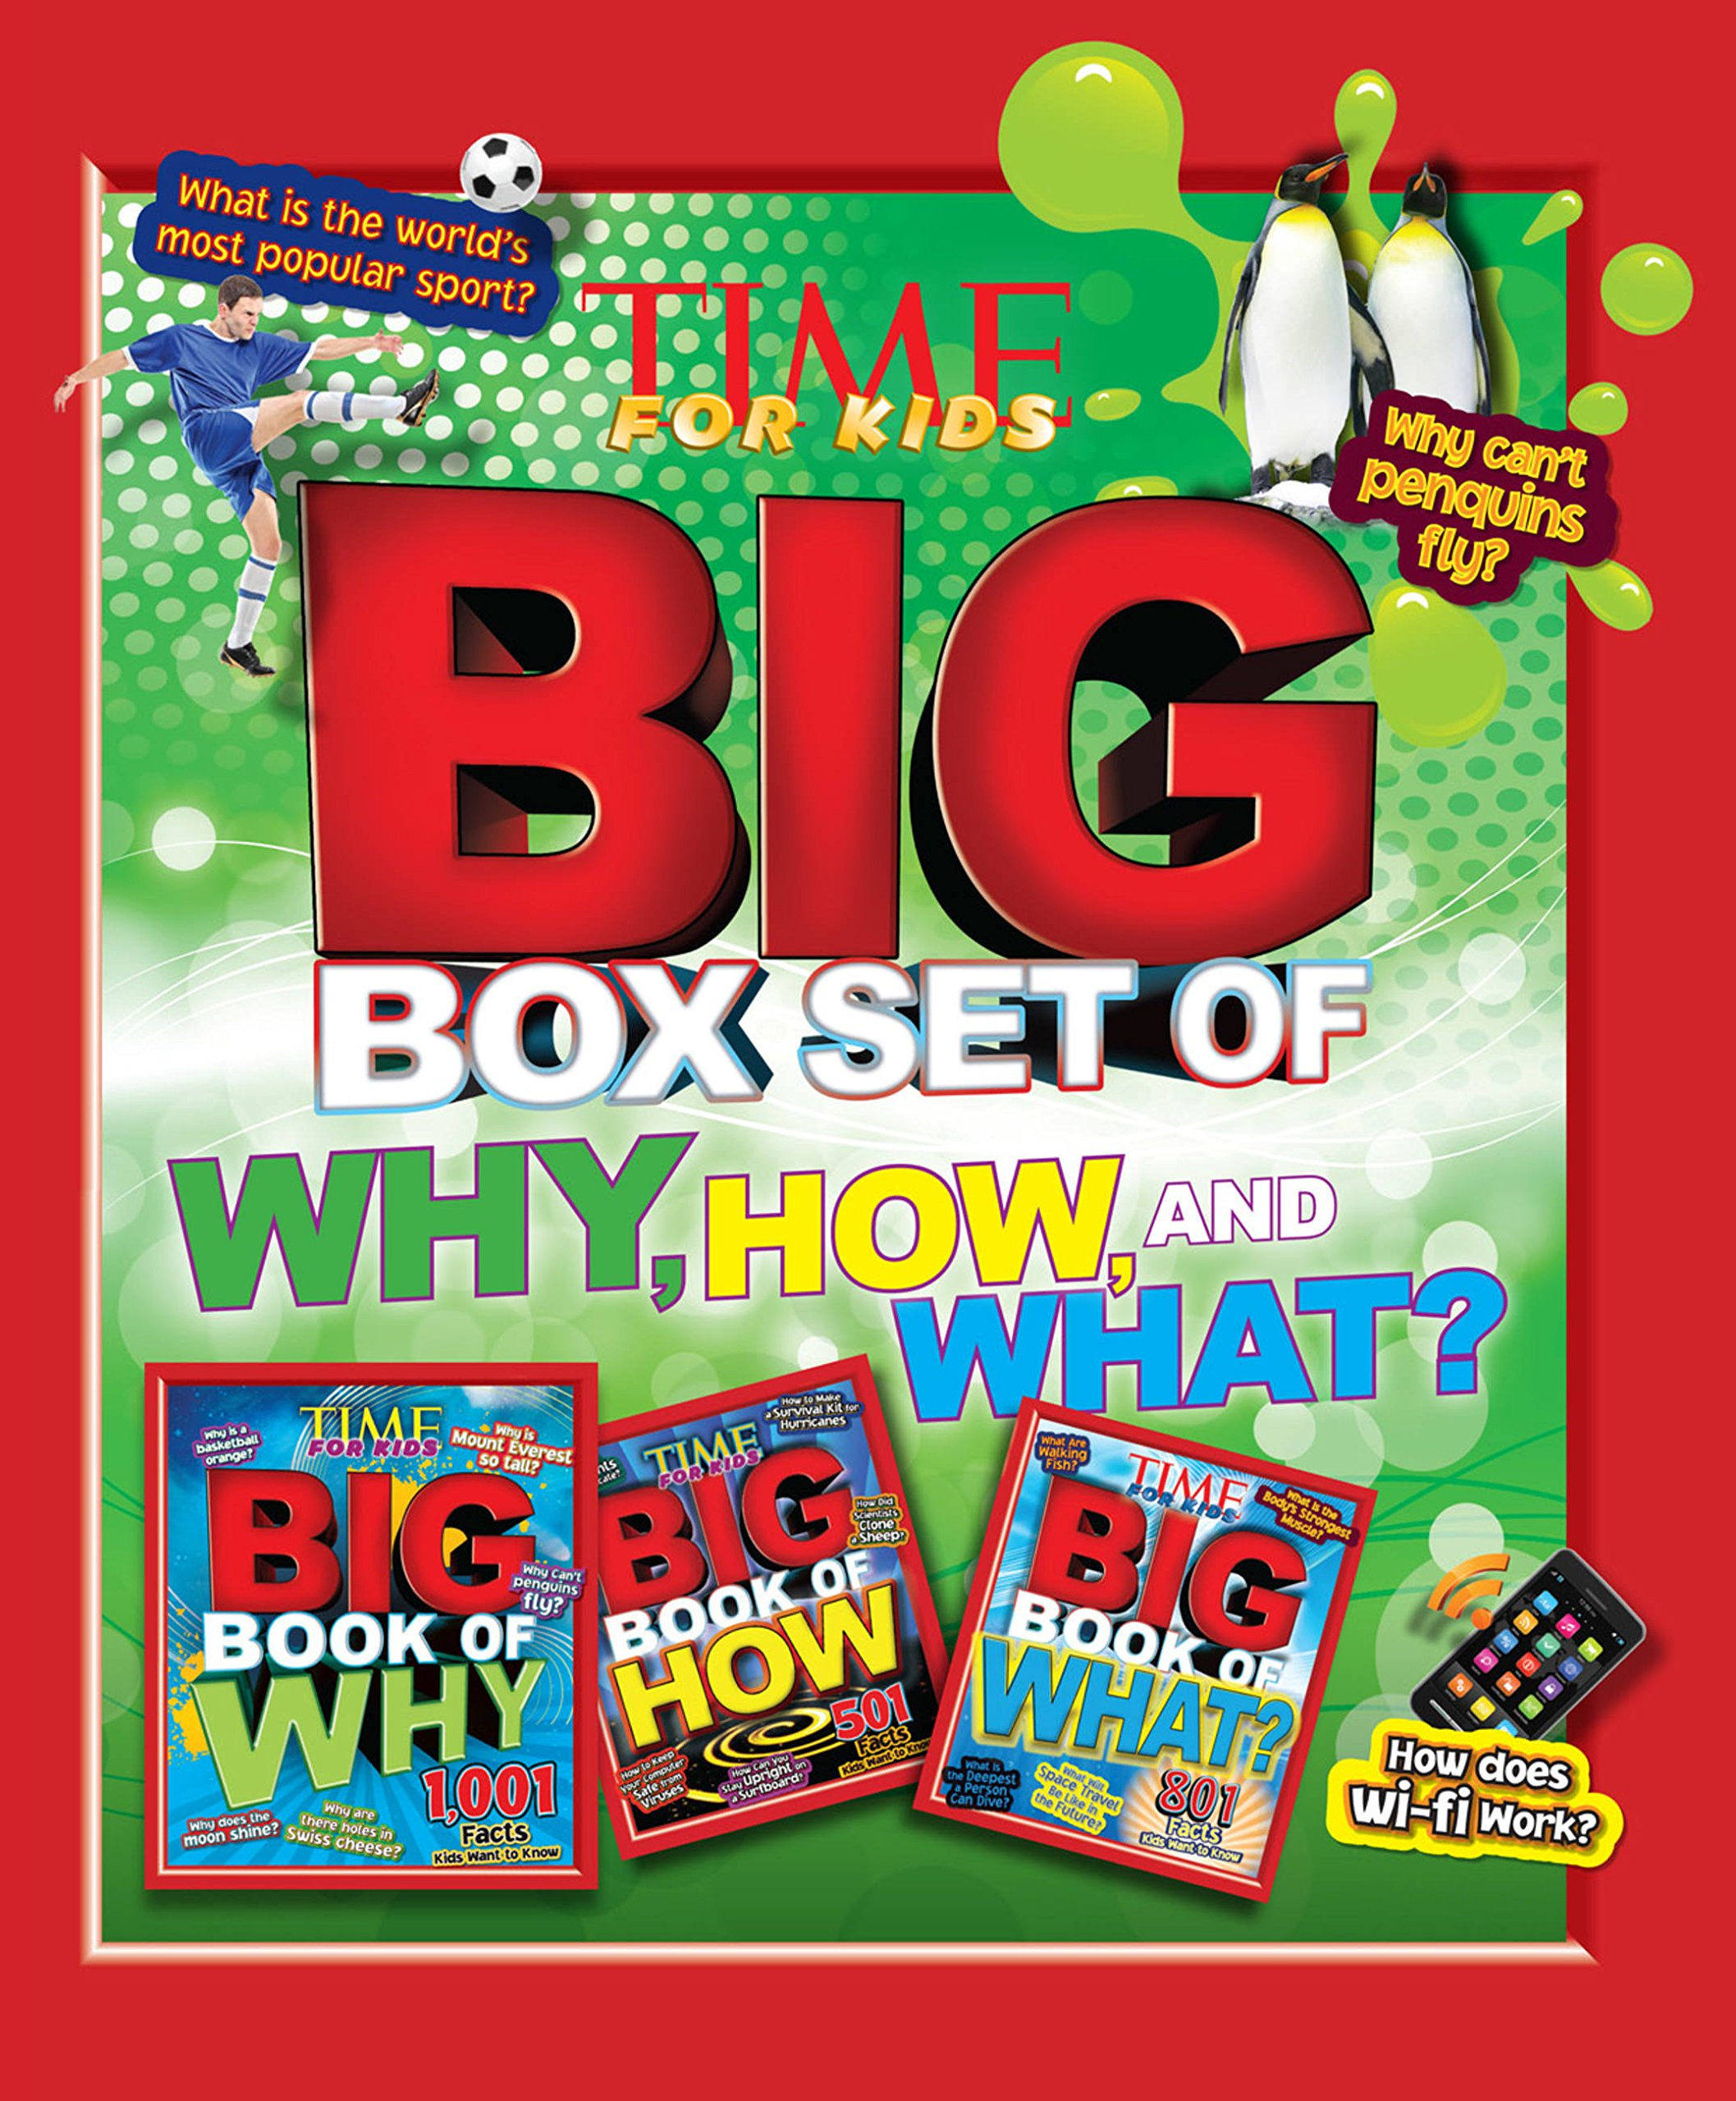 TIME For Kids Big Box Set of Why, How and What?